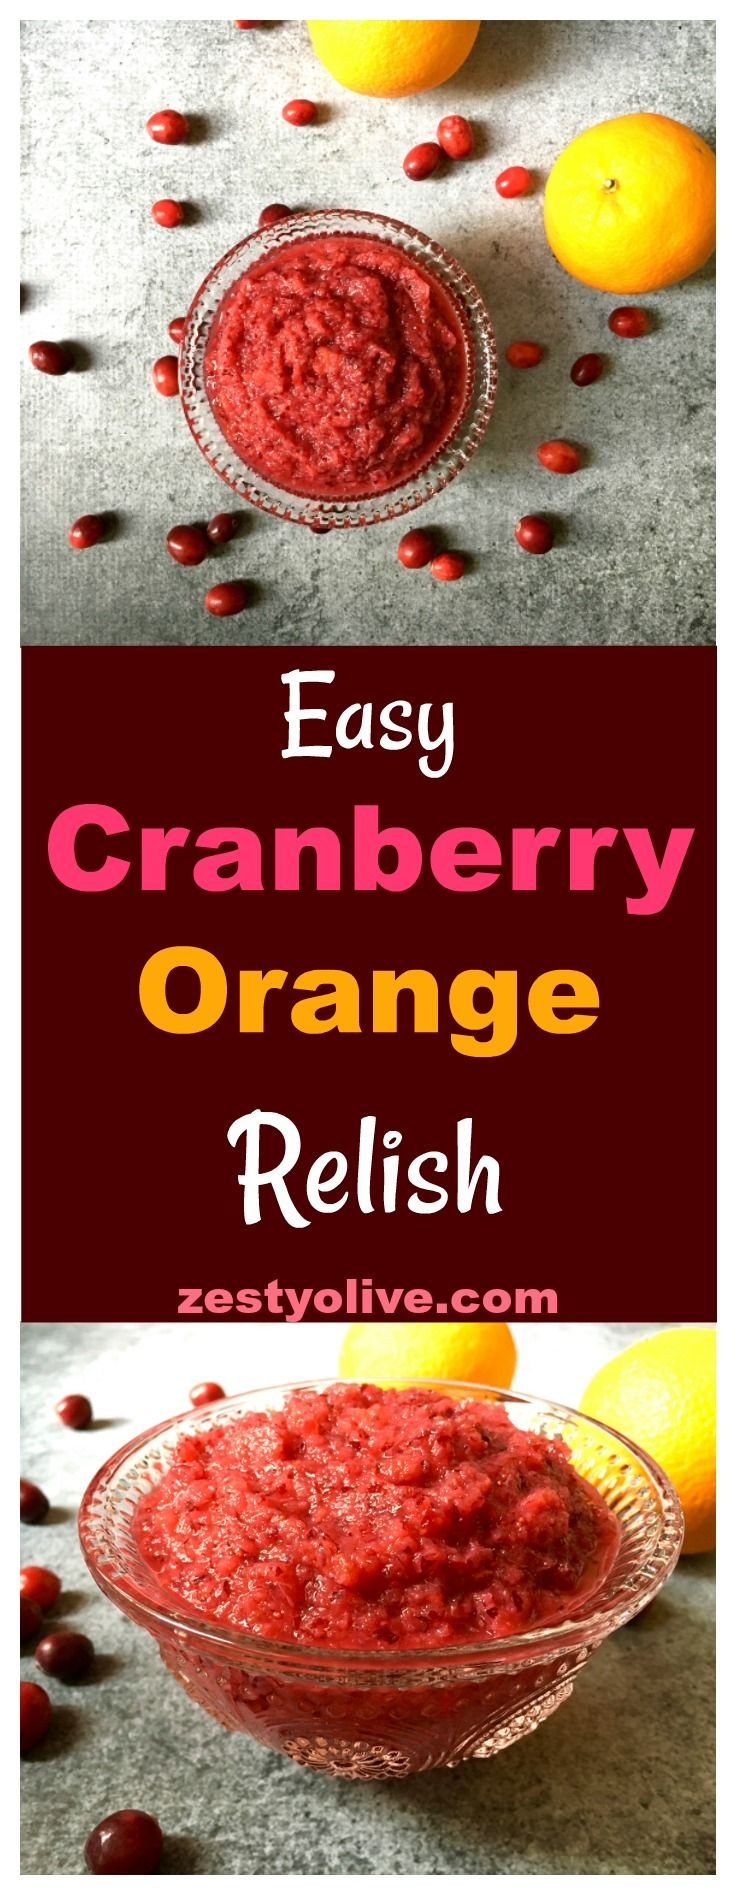 Easy Cranberry Orange Relish - perfect for fall and winter holidays like Thanksgiving and Christmas!